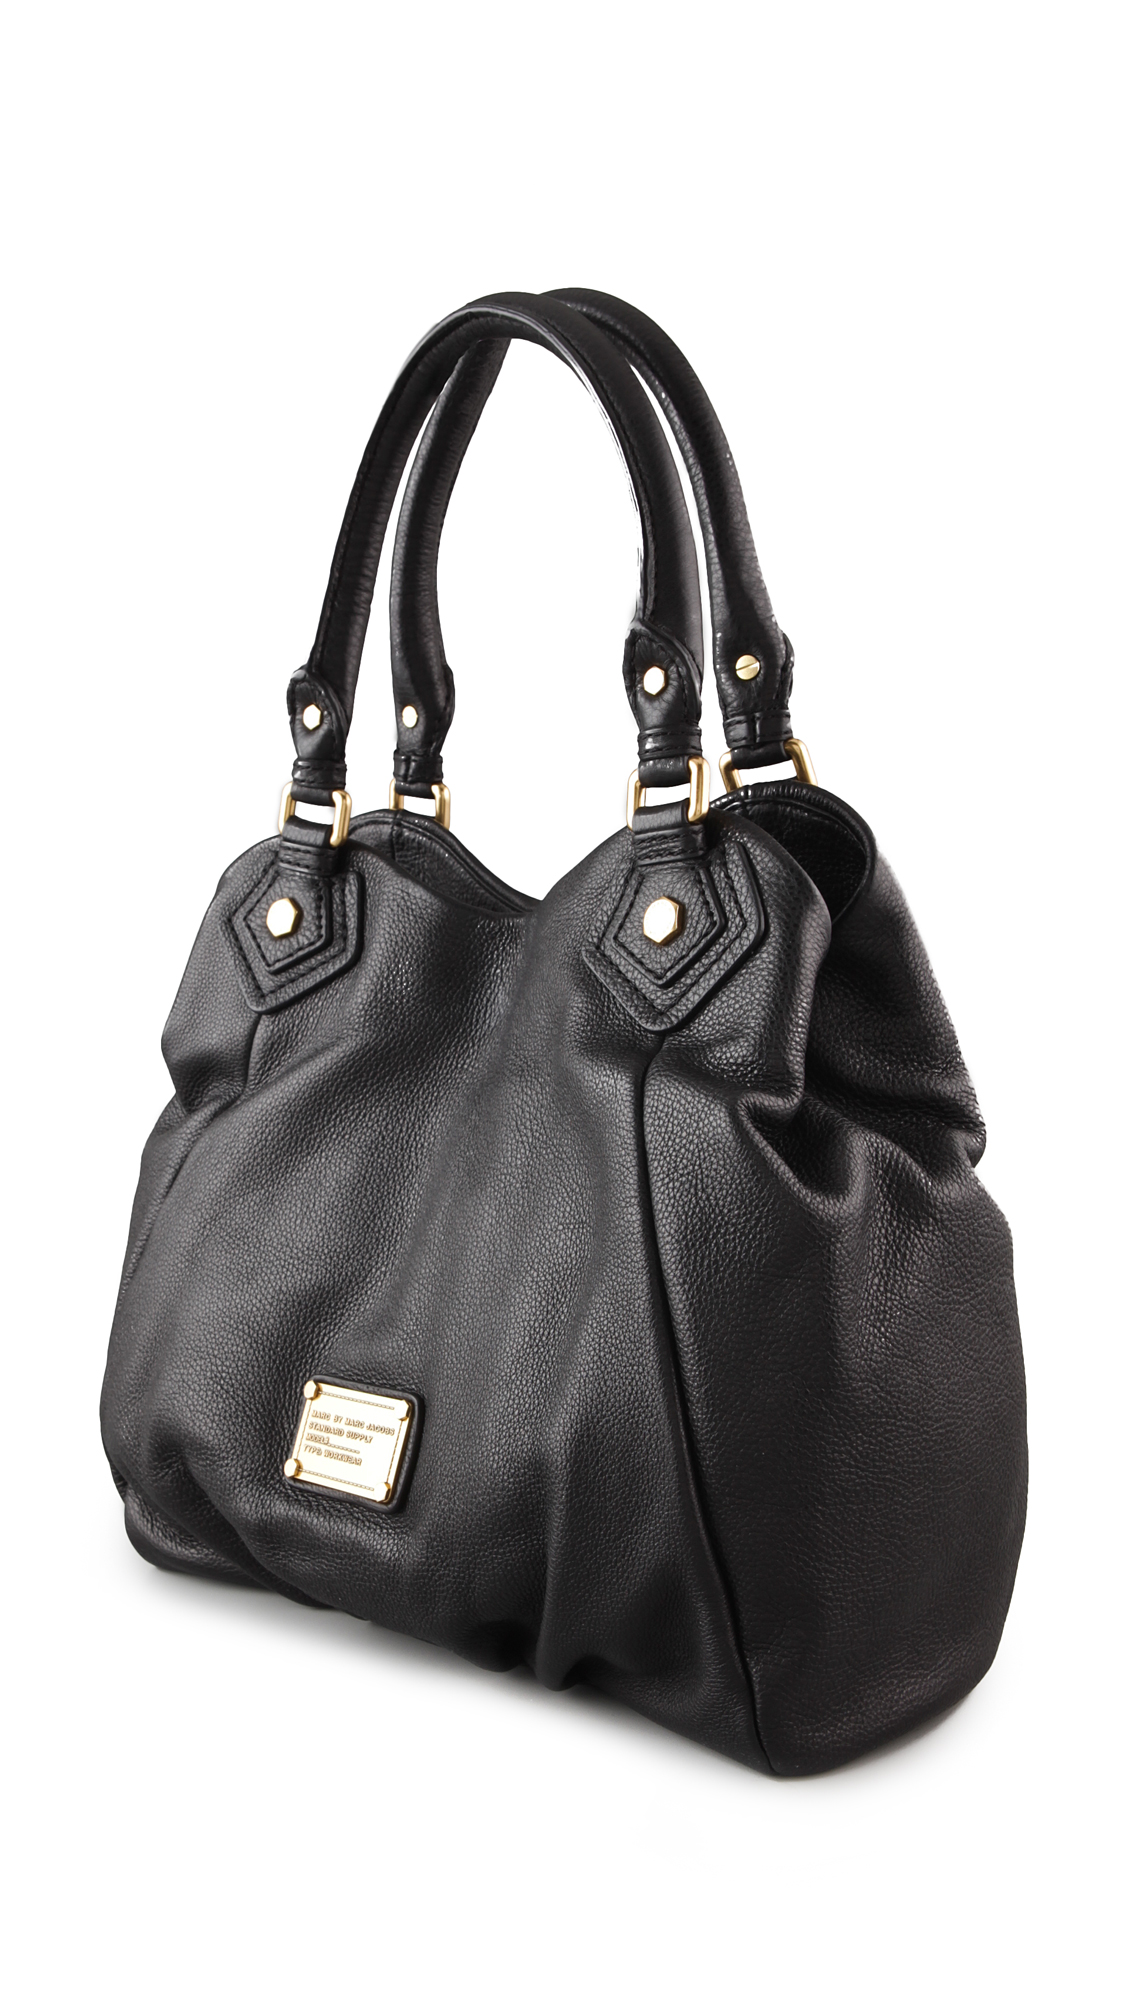 92fcbe06fd82 Marc by Marc Jacobs Classic Q Fran Bag